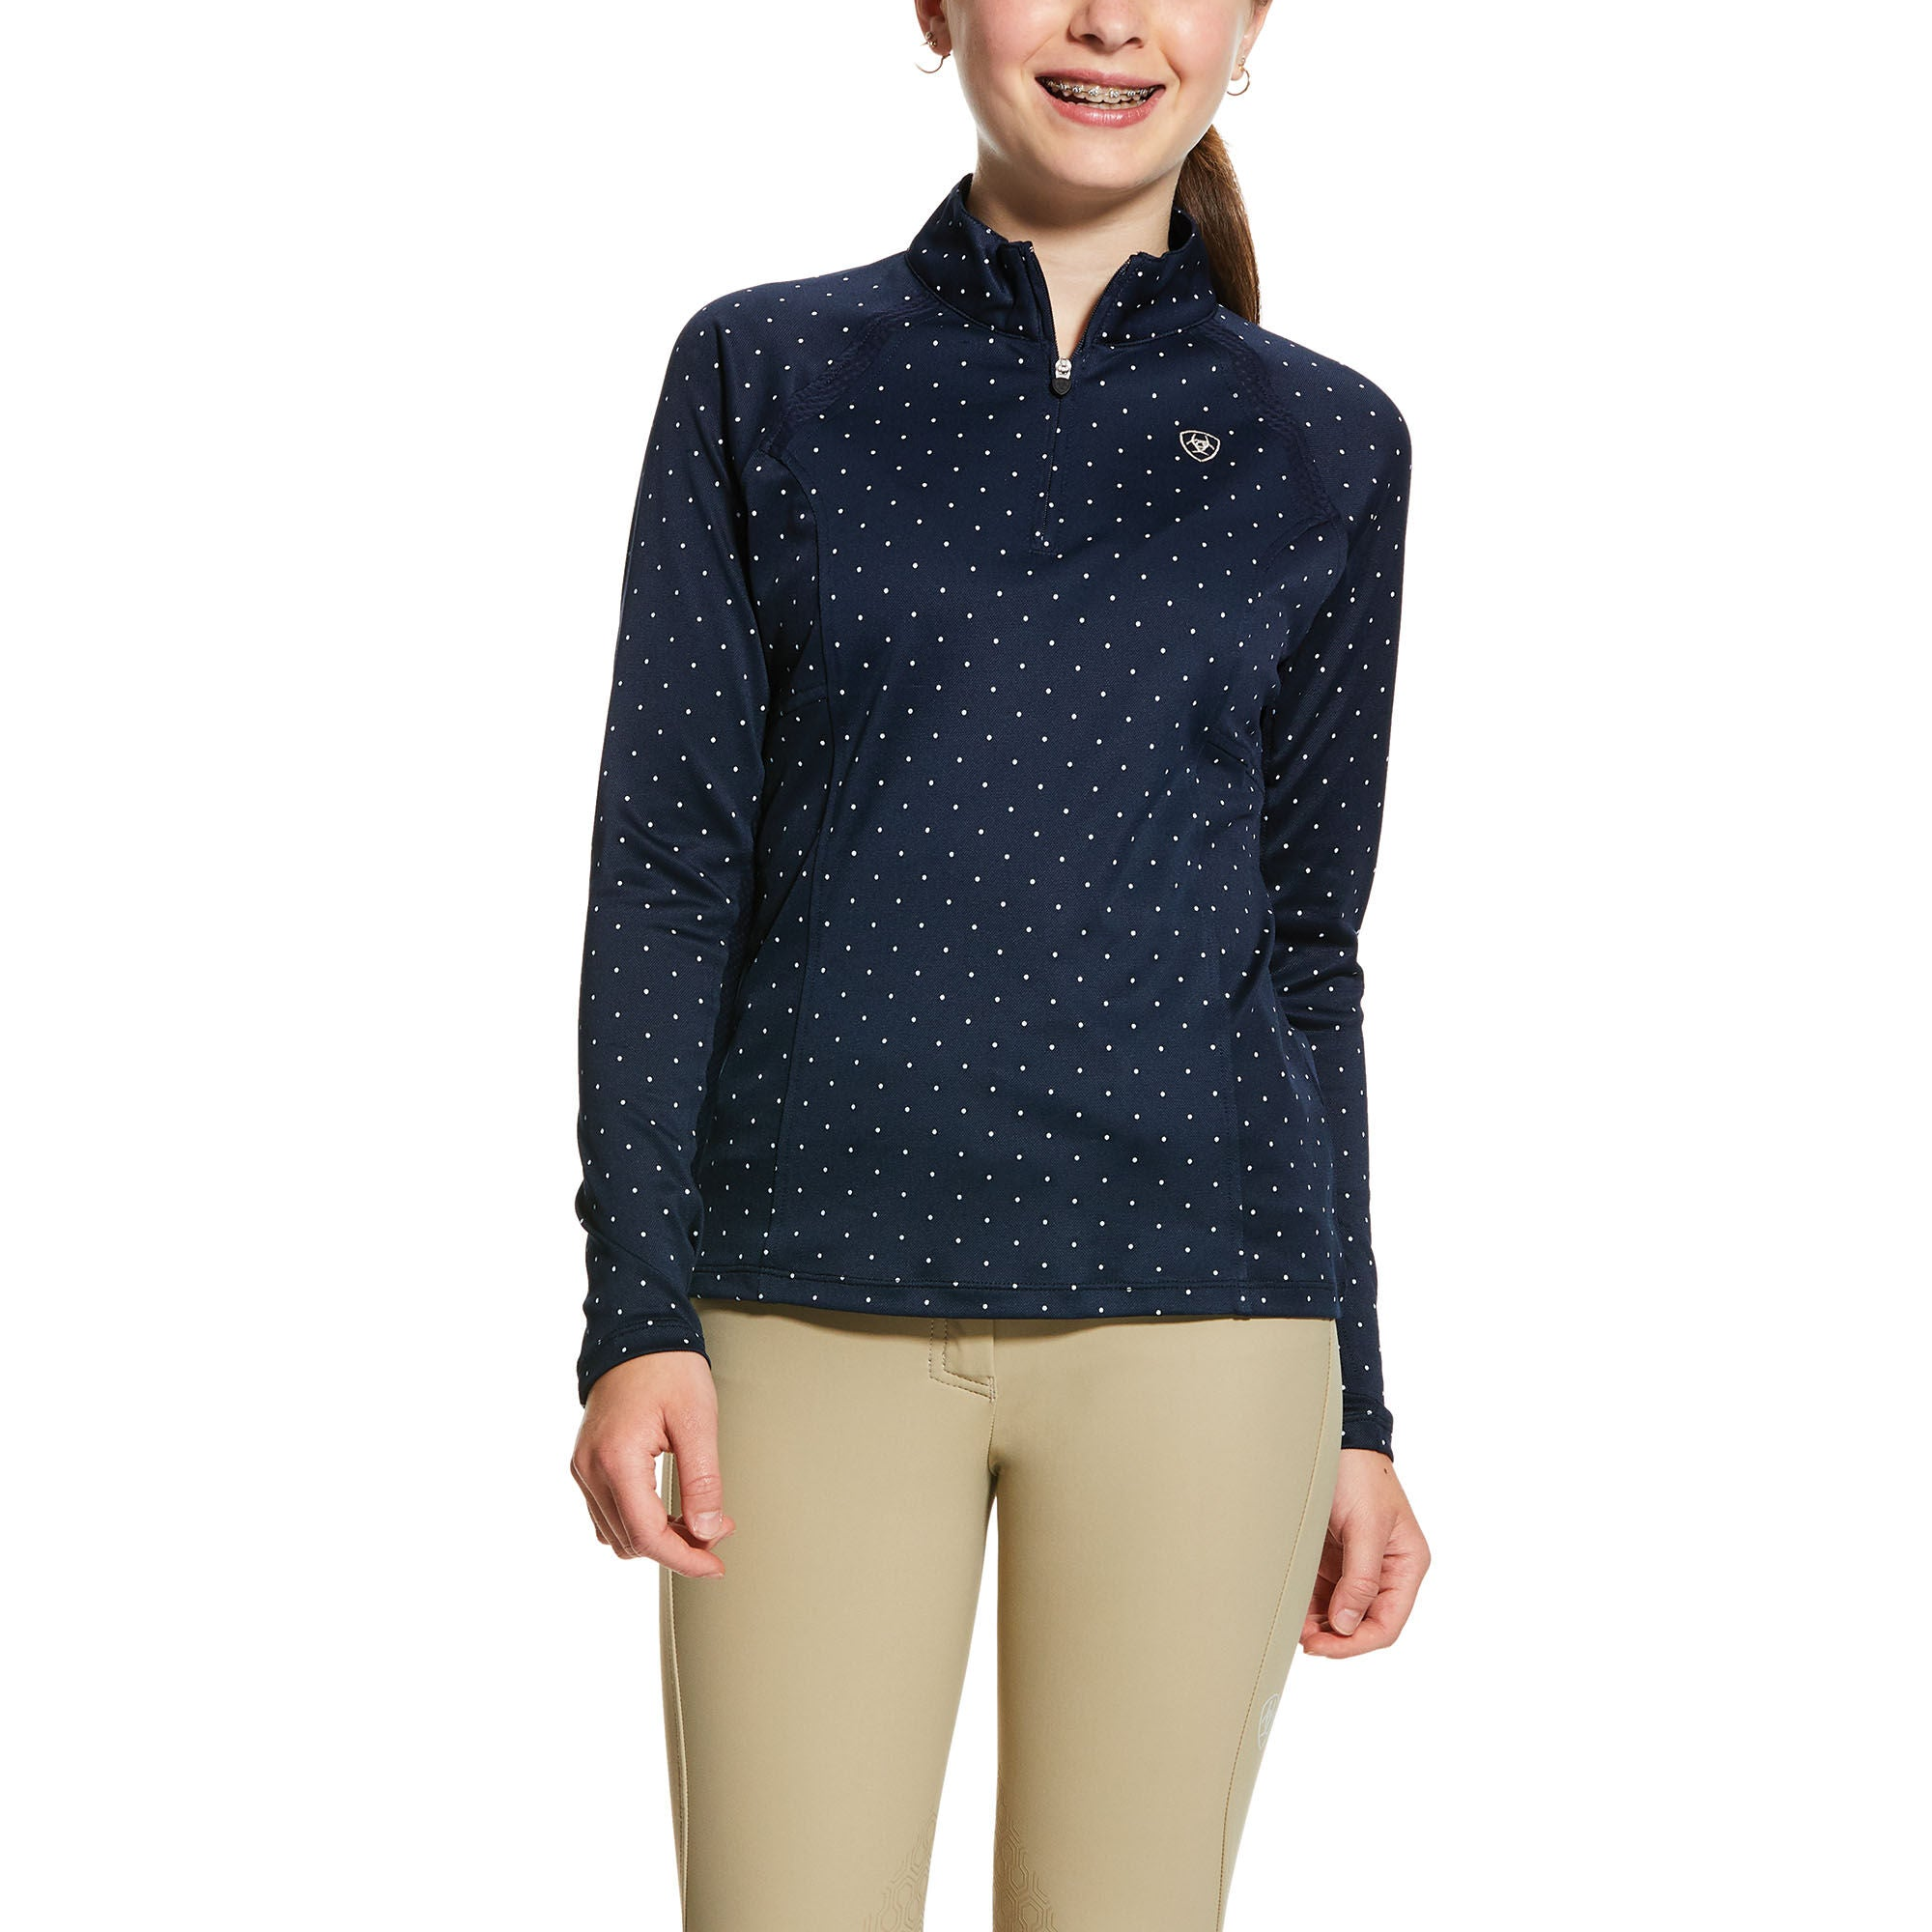 Ariat Girls Sunstopper 2.0 1/4 Zip Baselayer Shirt - North Shore Saddlery